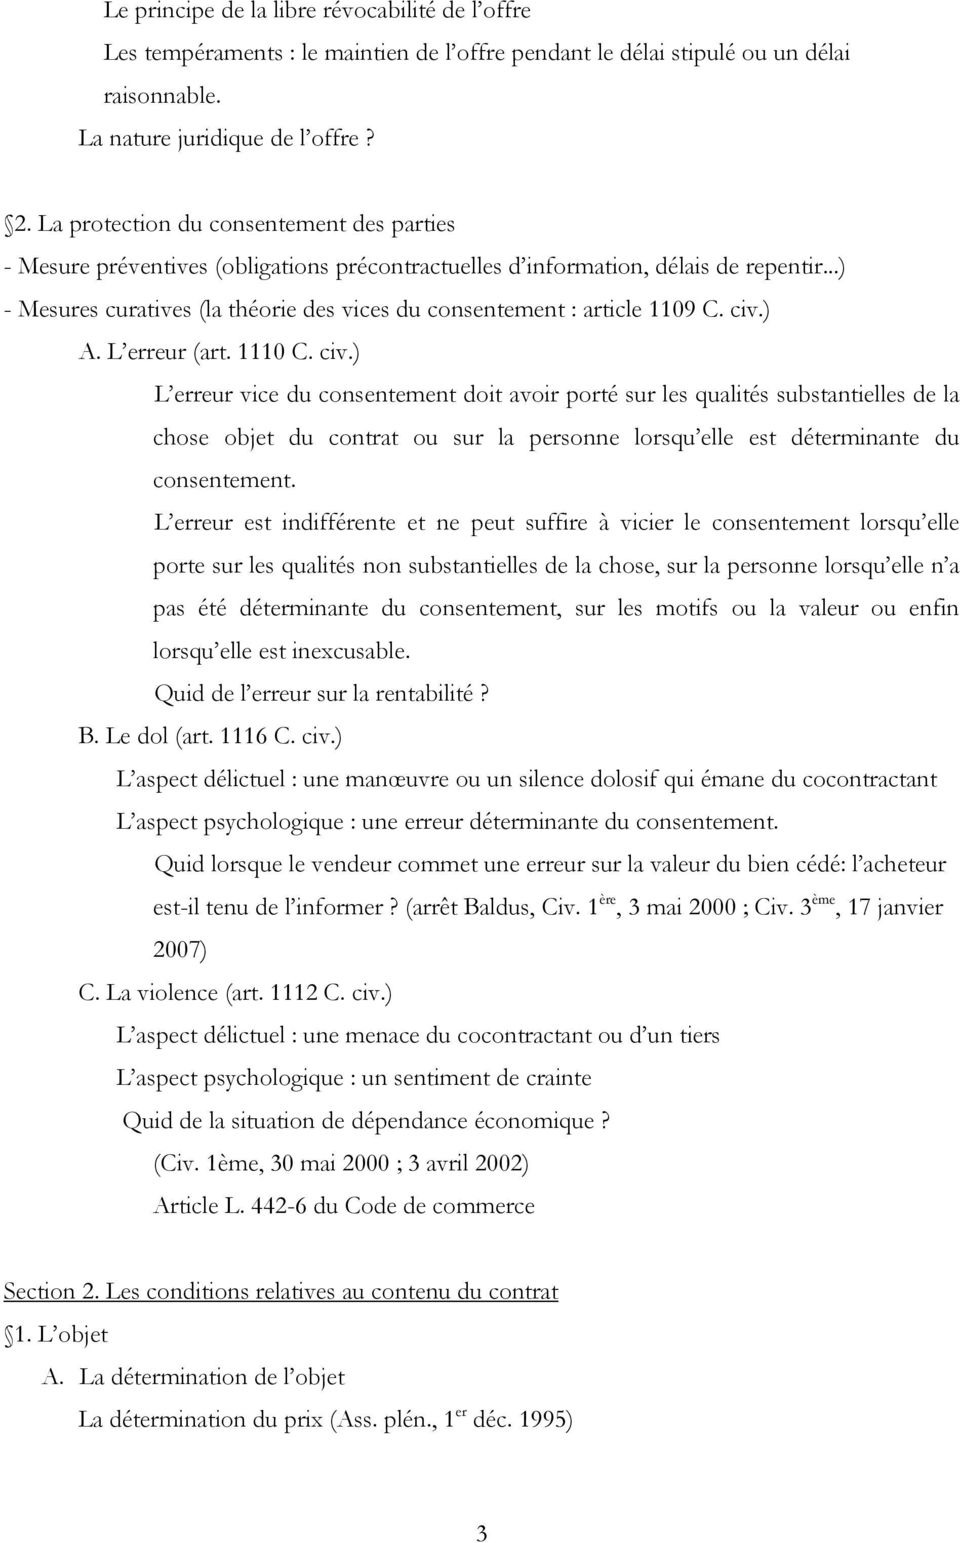 ..) - Mesures curatives (la théorie des vices du consentement : article 1109 C. civ.